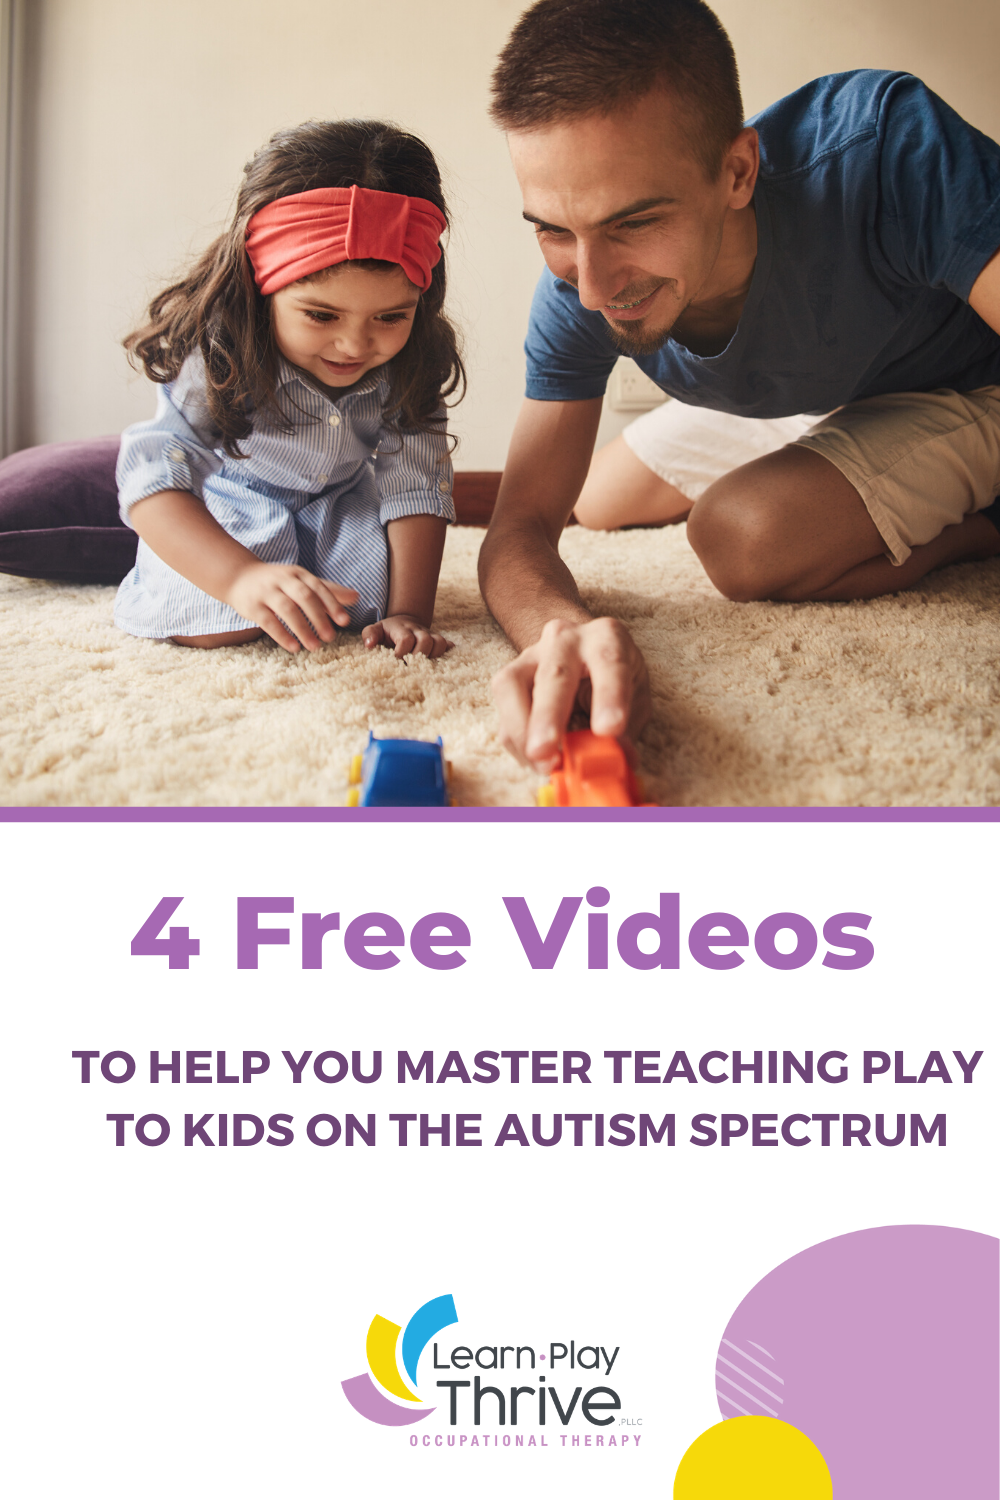 4 videos on teaching autistic kids to play